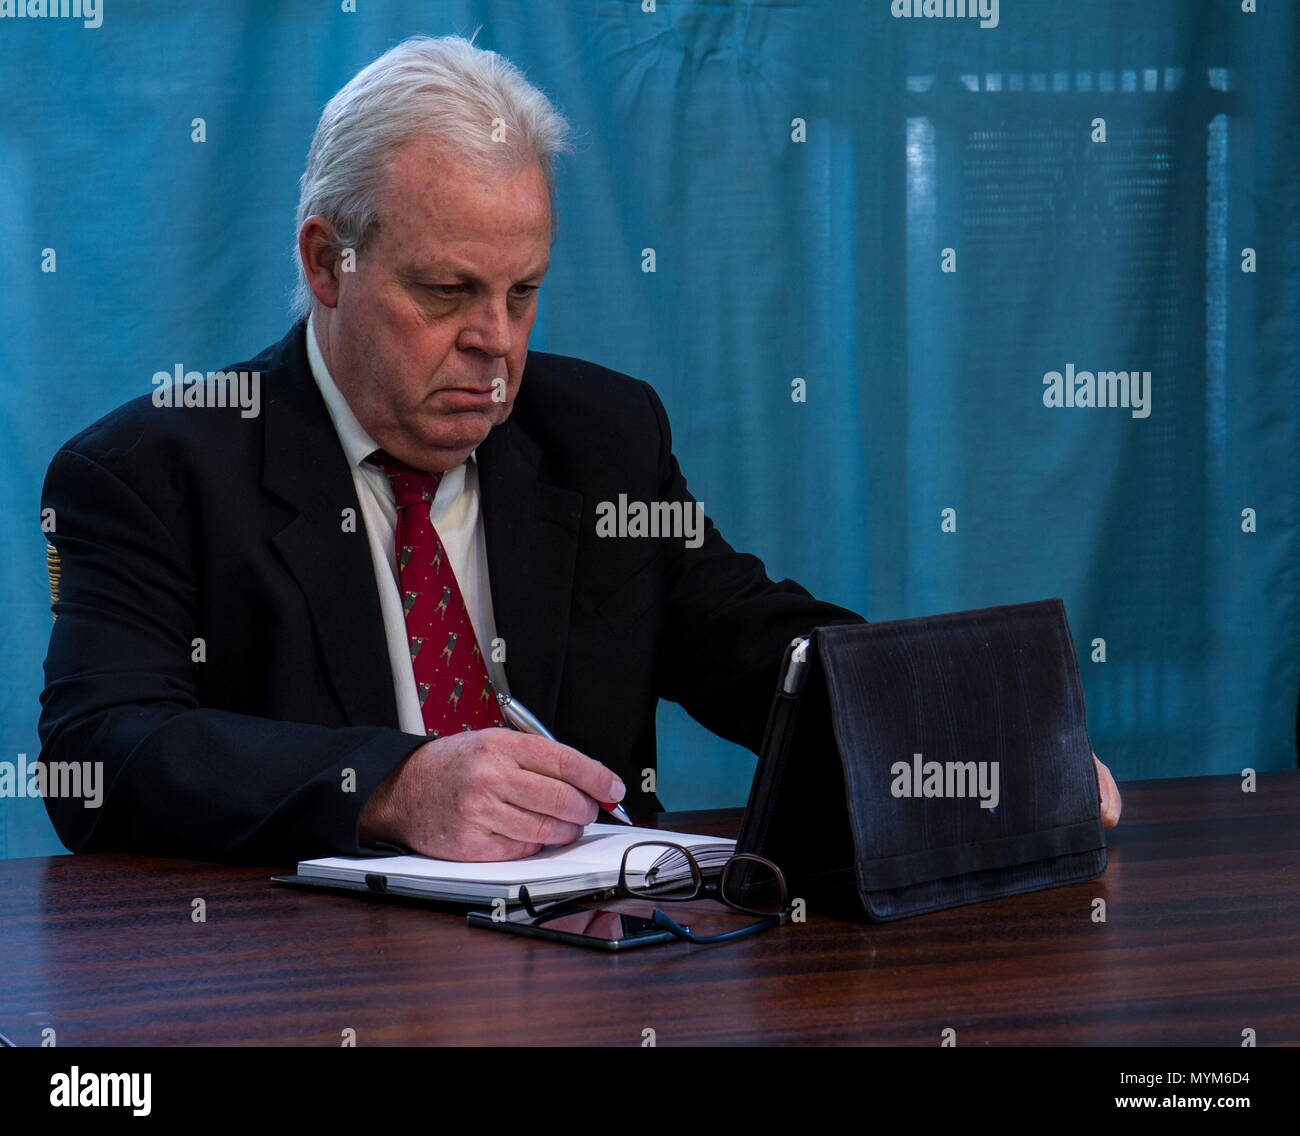 Elderly caucasian executive with grey hair and a dark suit works at a boardroom table image with copy space in landscape format - Stock Image